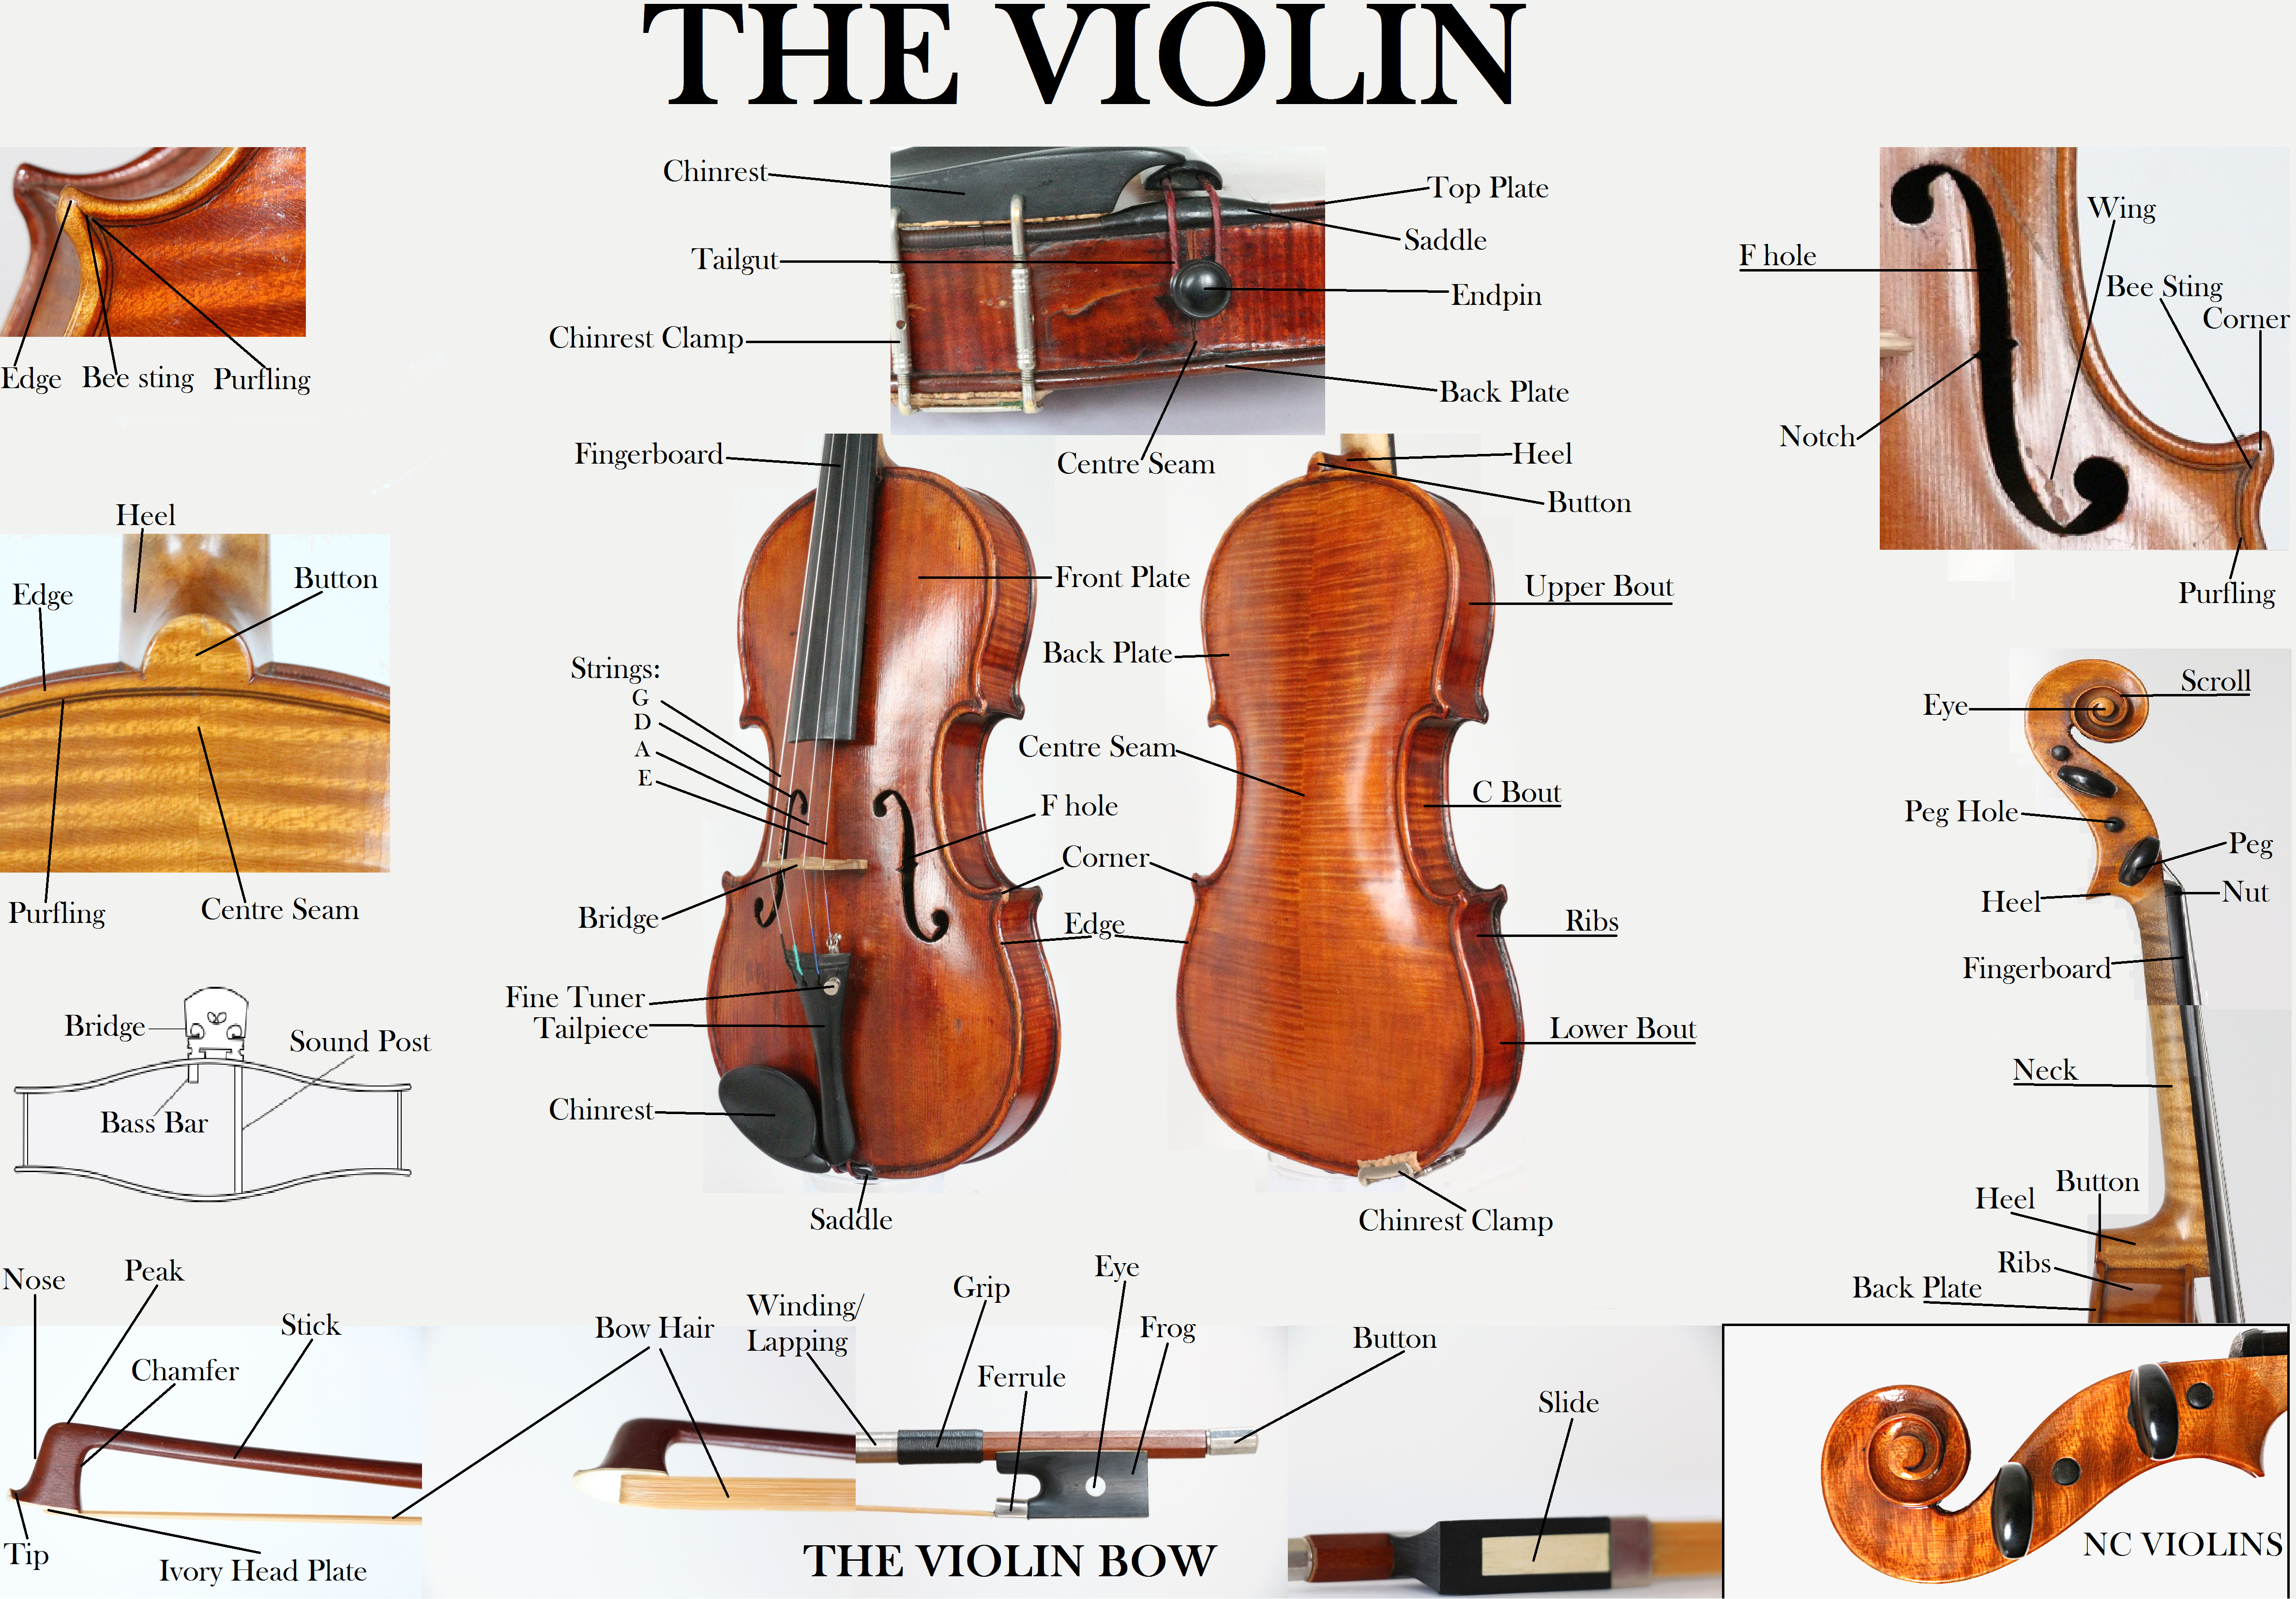 diagram of violin and bow parts nc violins rh ncviolins com violin bow parts diagram Violin Tailpiece